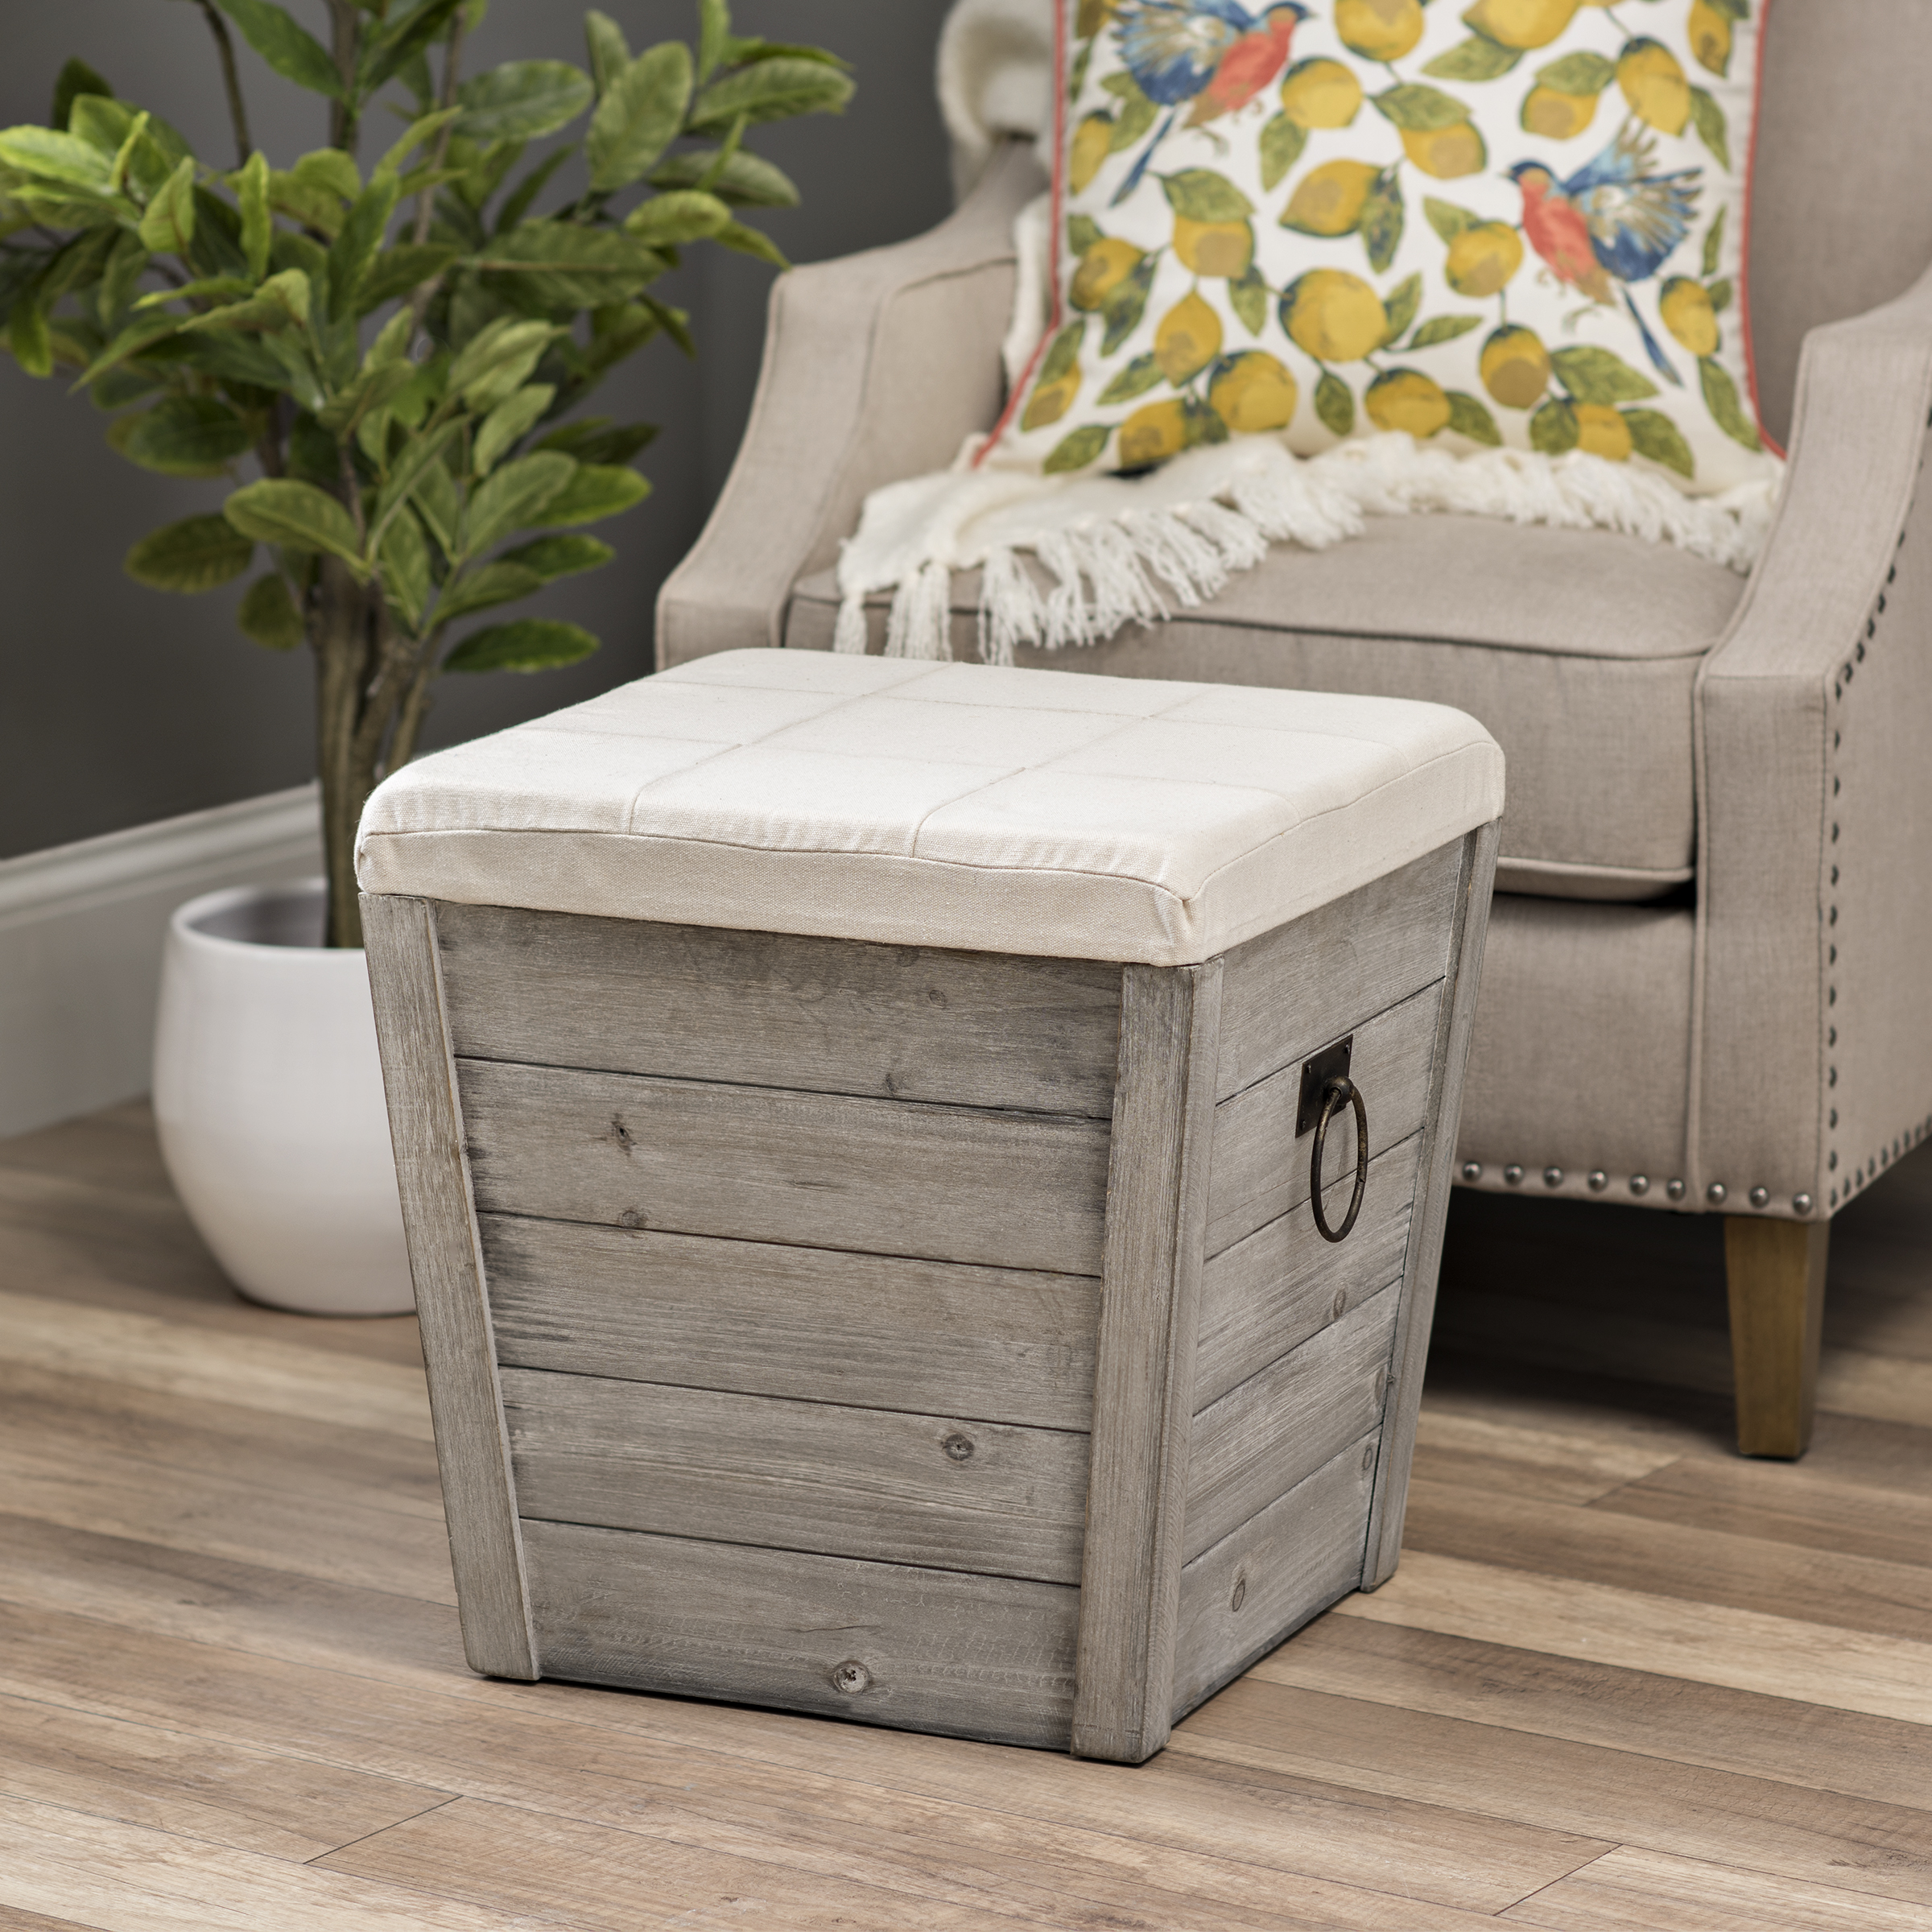 Kirkland's - Gray Shiplap and Linen Tapered Storage Ottoman